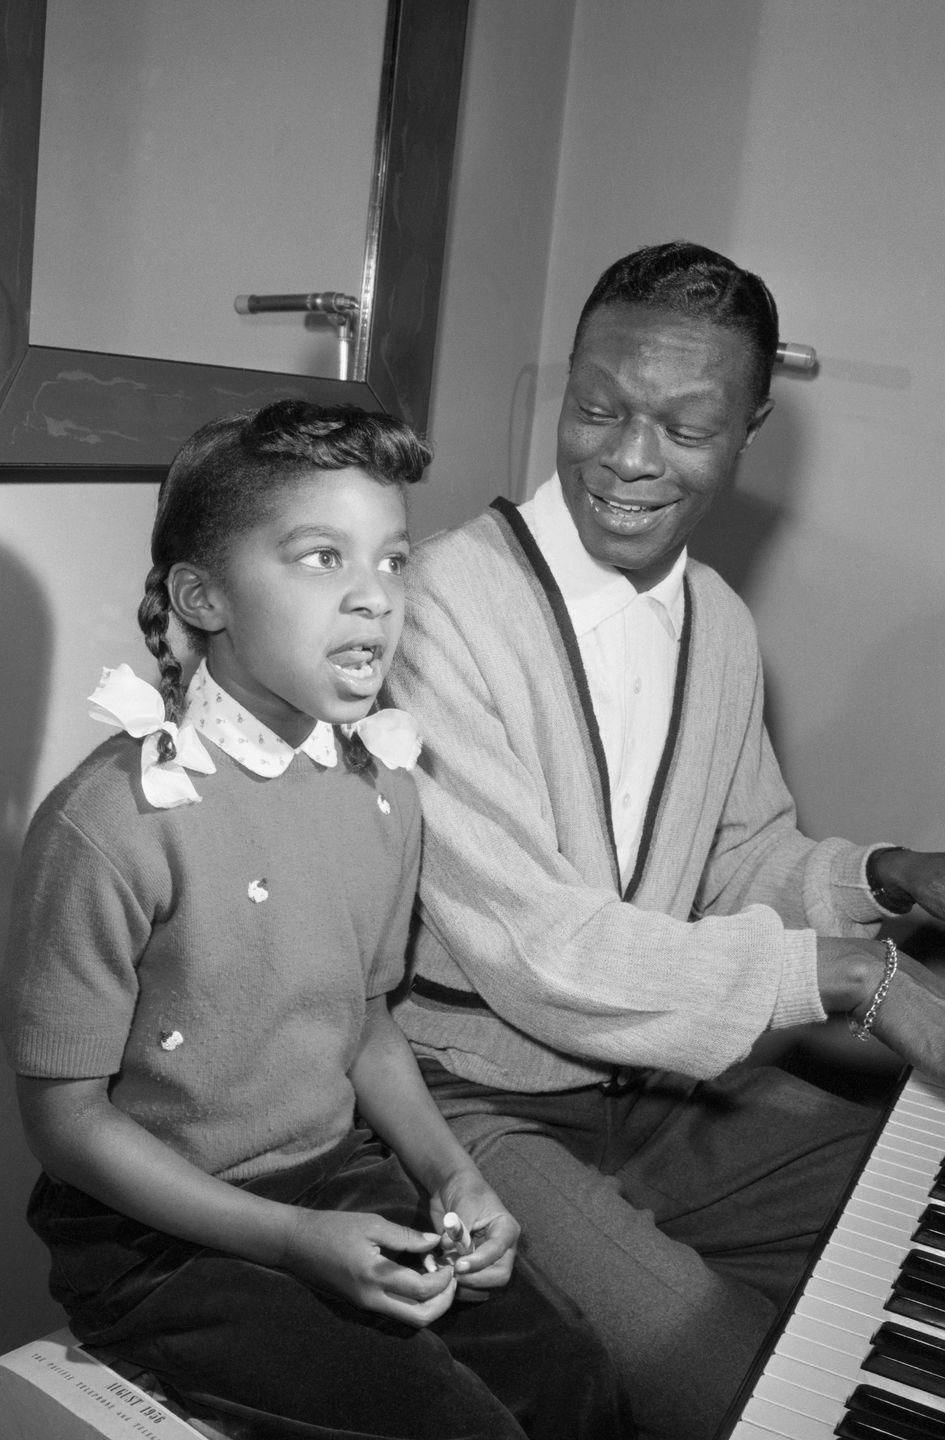 <p>Nat King Cole gives his 7-year-old daughter, Natalie, a voice lesson at the piano in their home in Los Angeles in December 1956.</p>